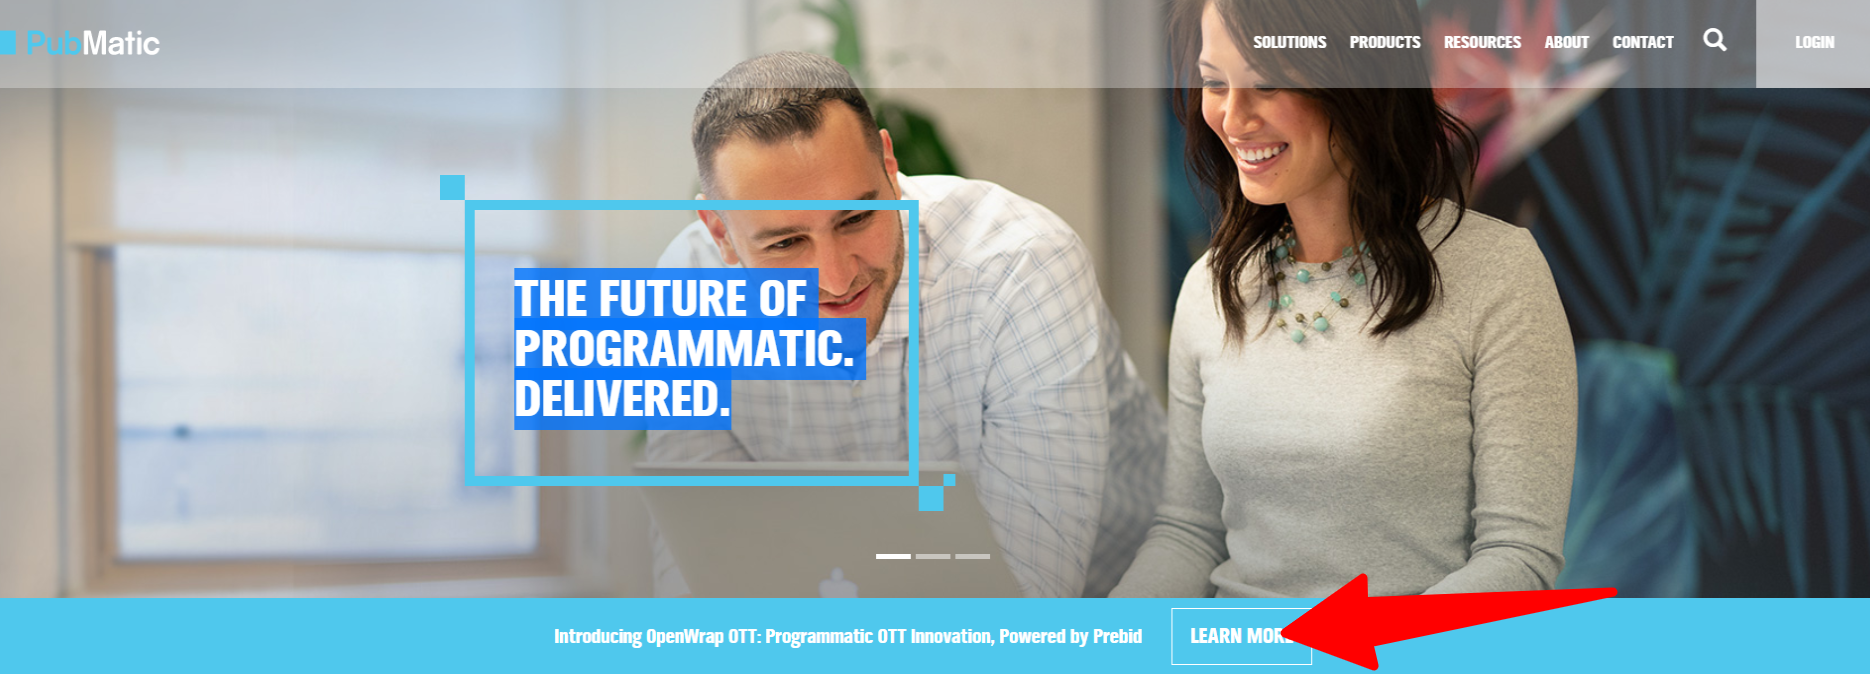 Programmatic - Overview